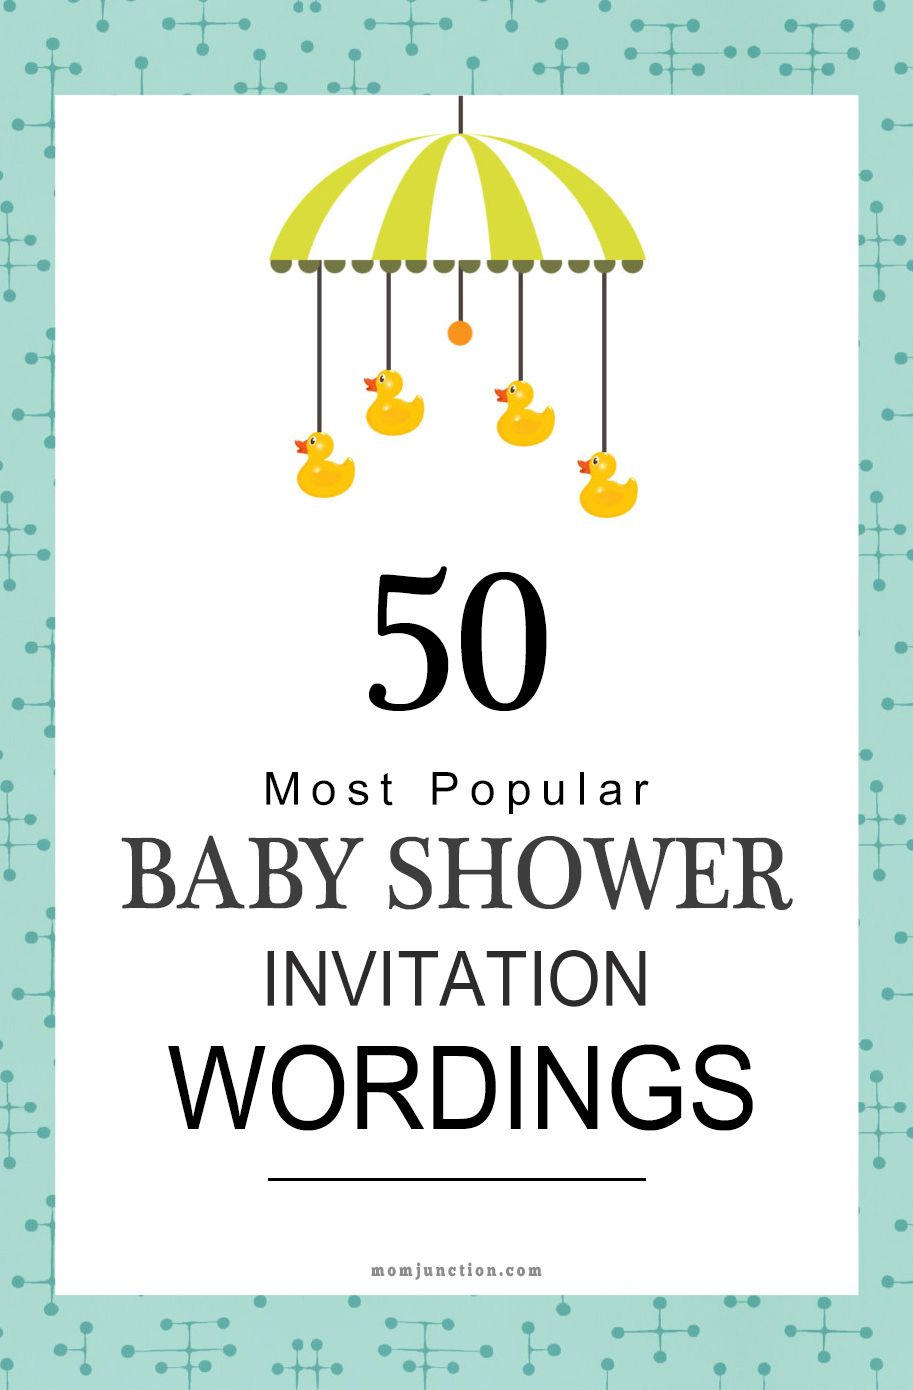 75 most popular baby shower invitation wordings food family